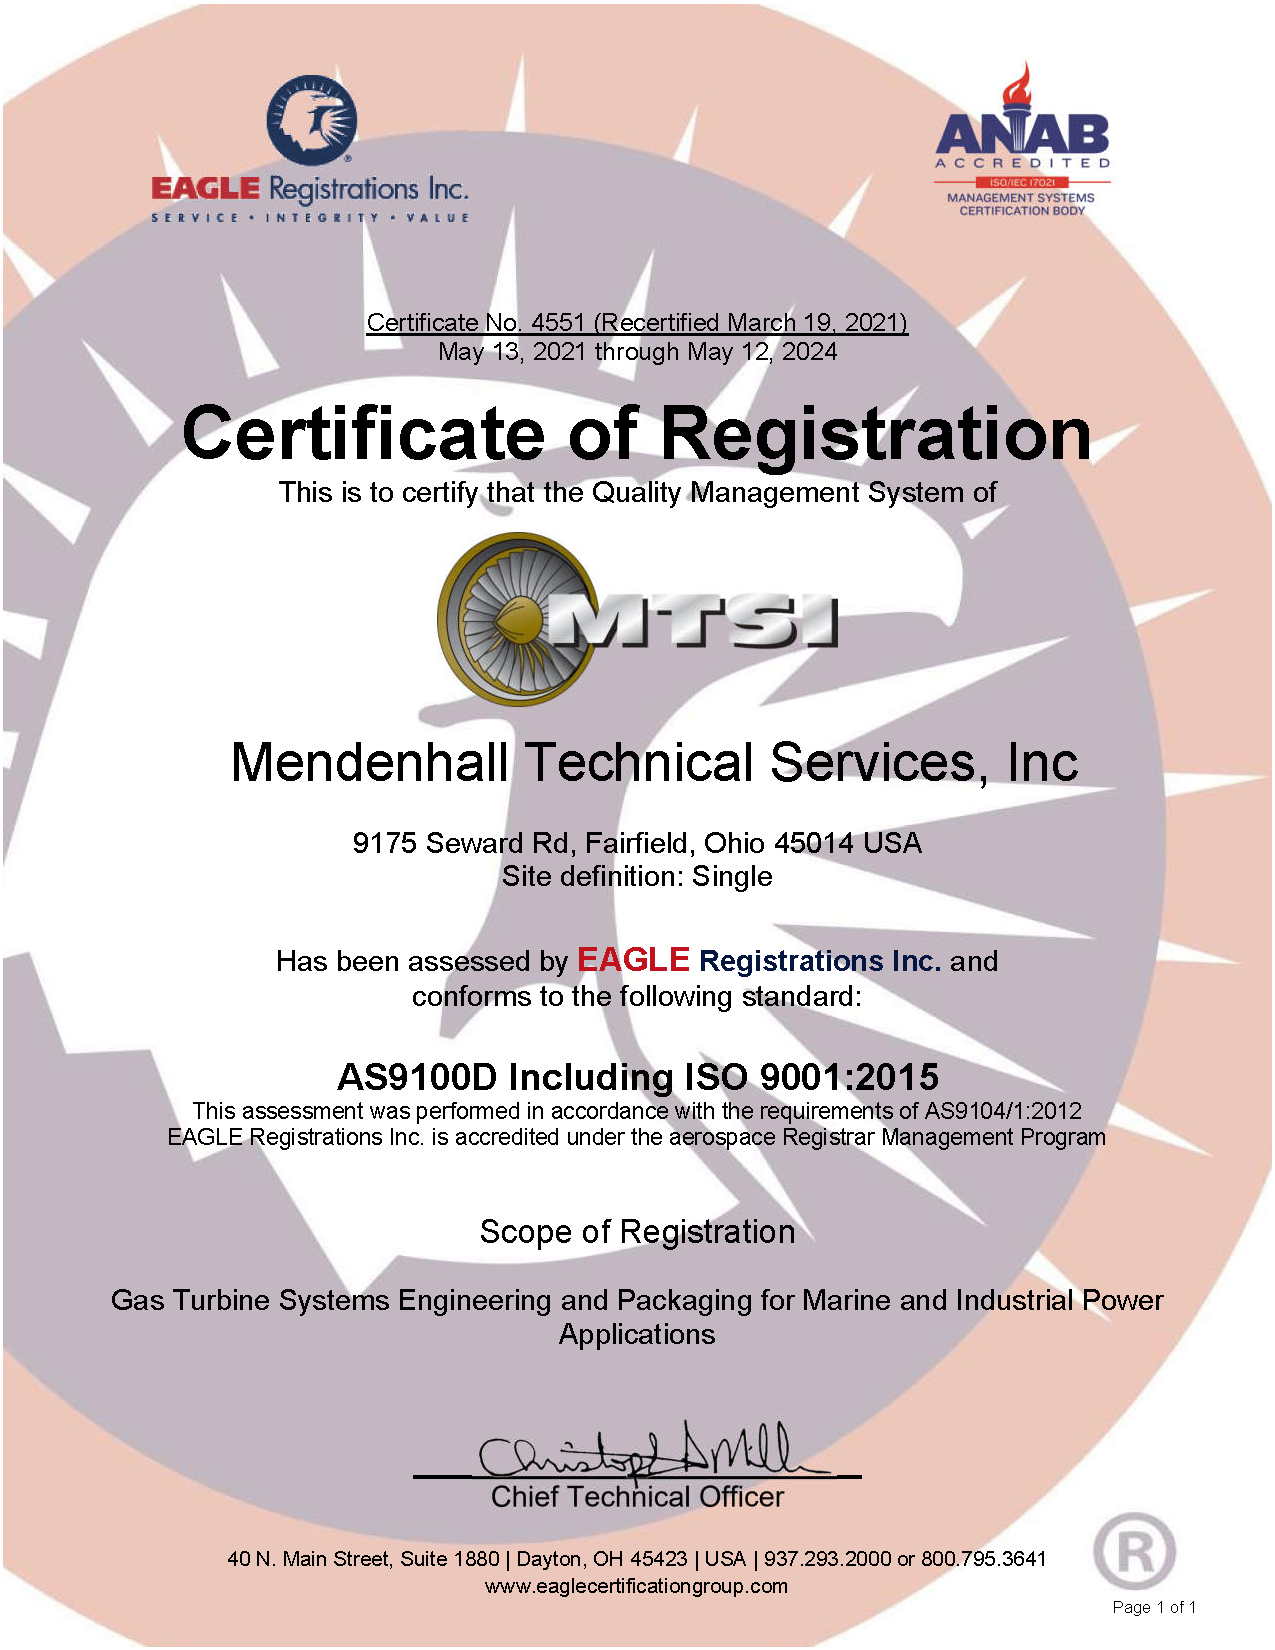 AS9100D-ISO 9001:2015 Certification